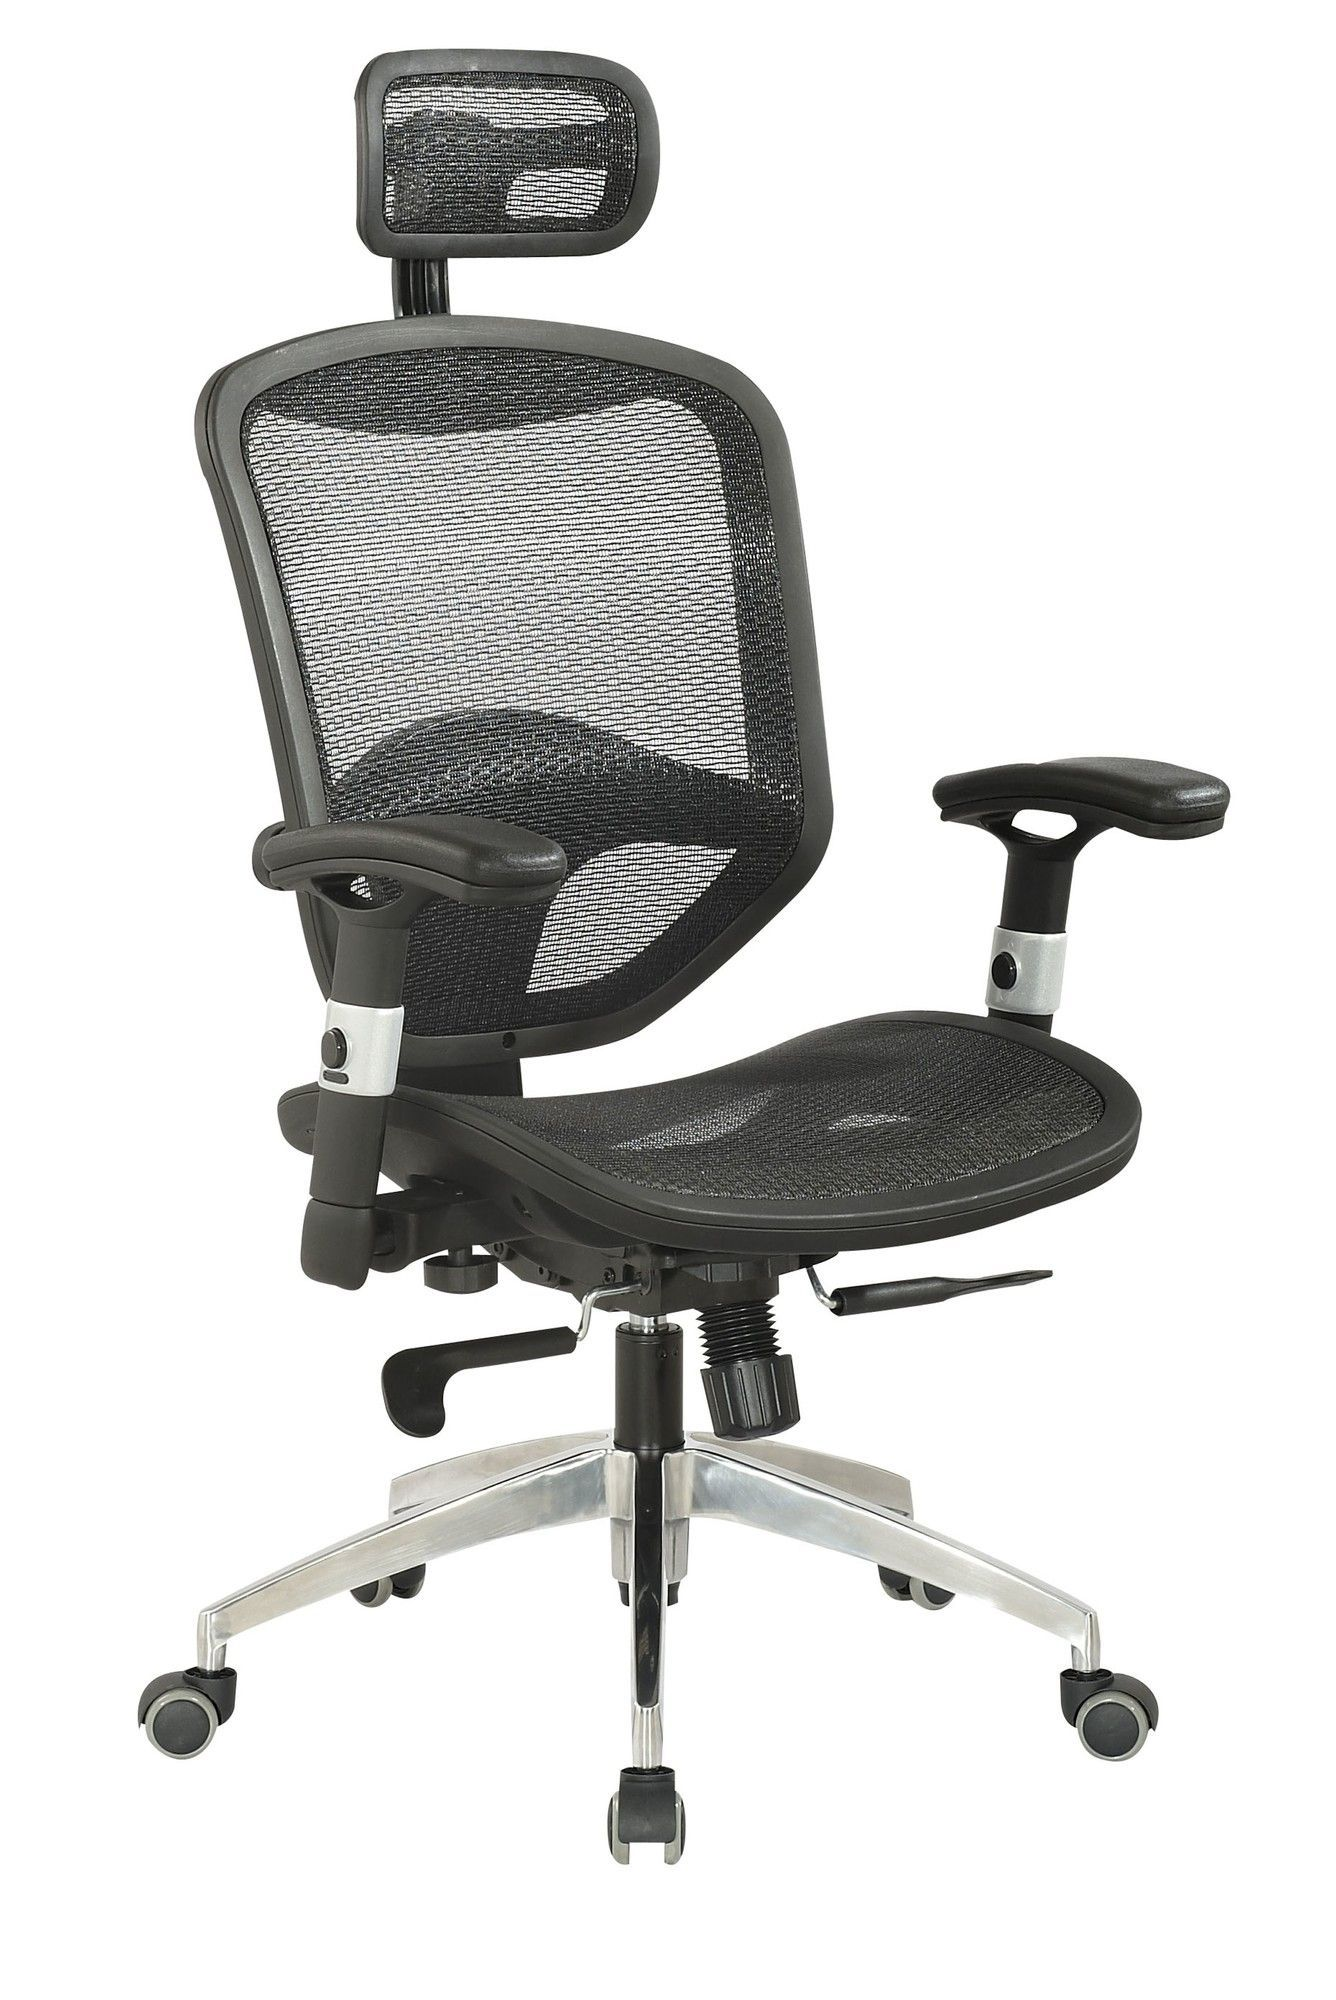 Inglestone Common Executive Chair Adjustable Office Chair Mesh